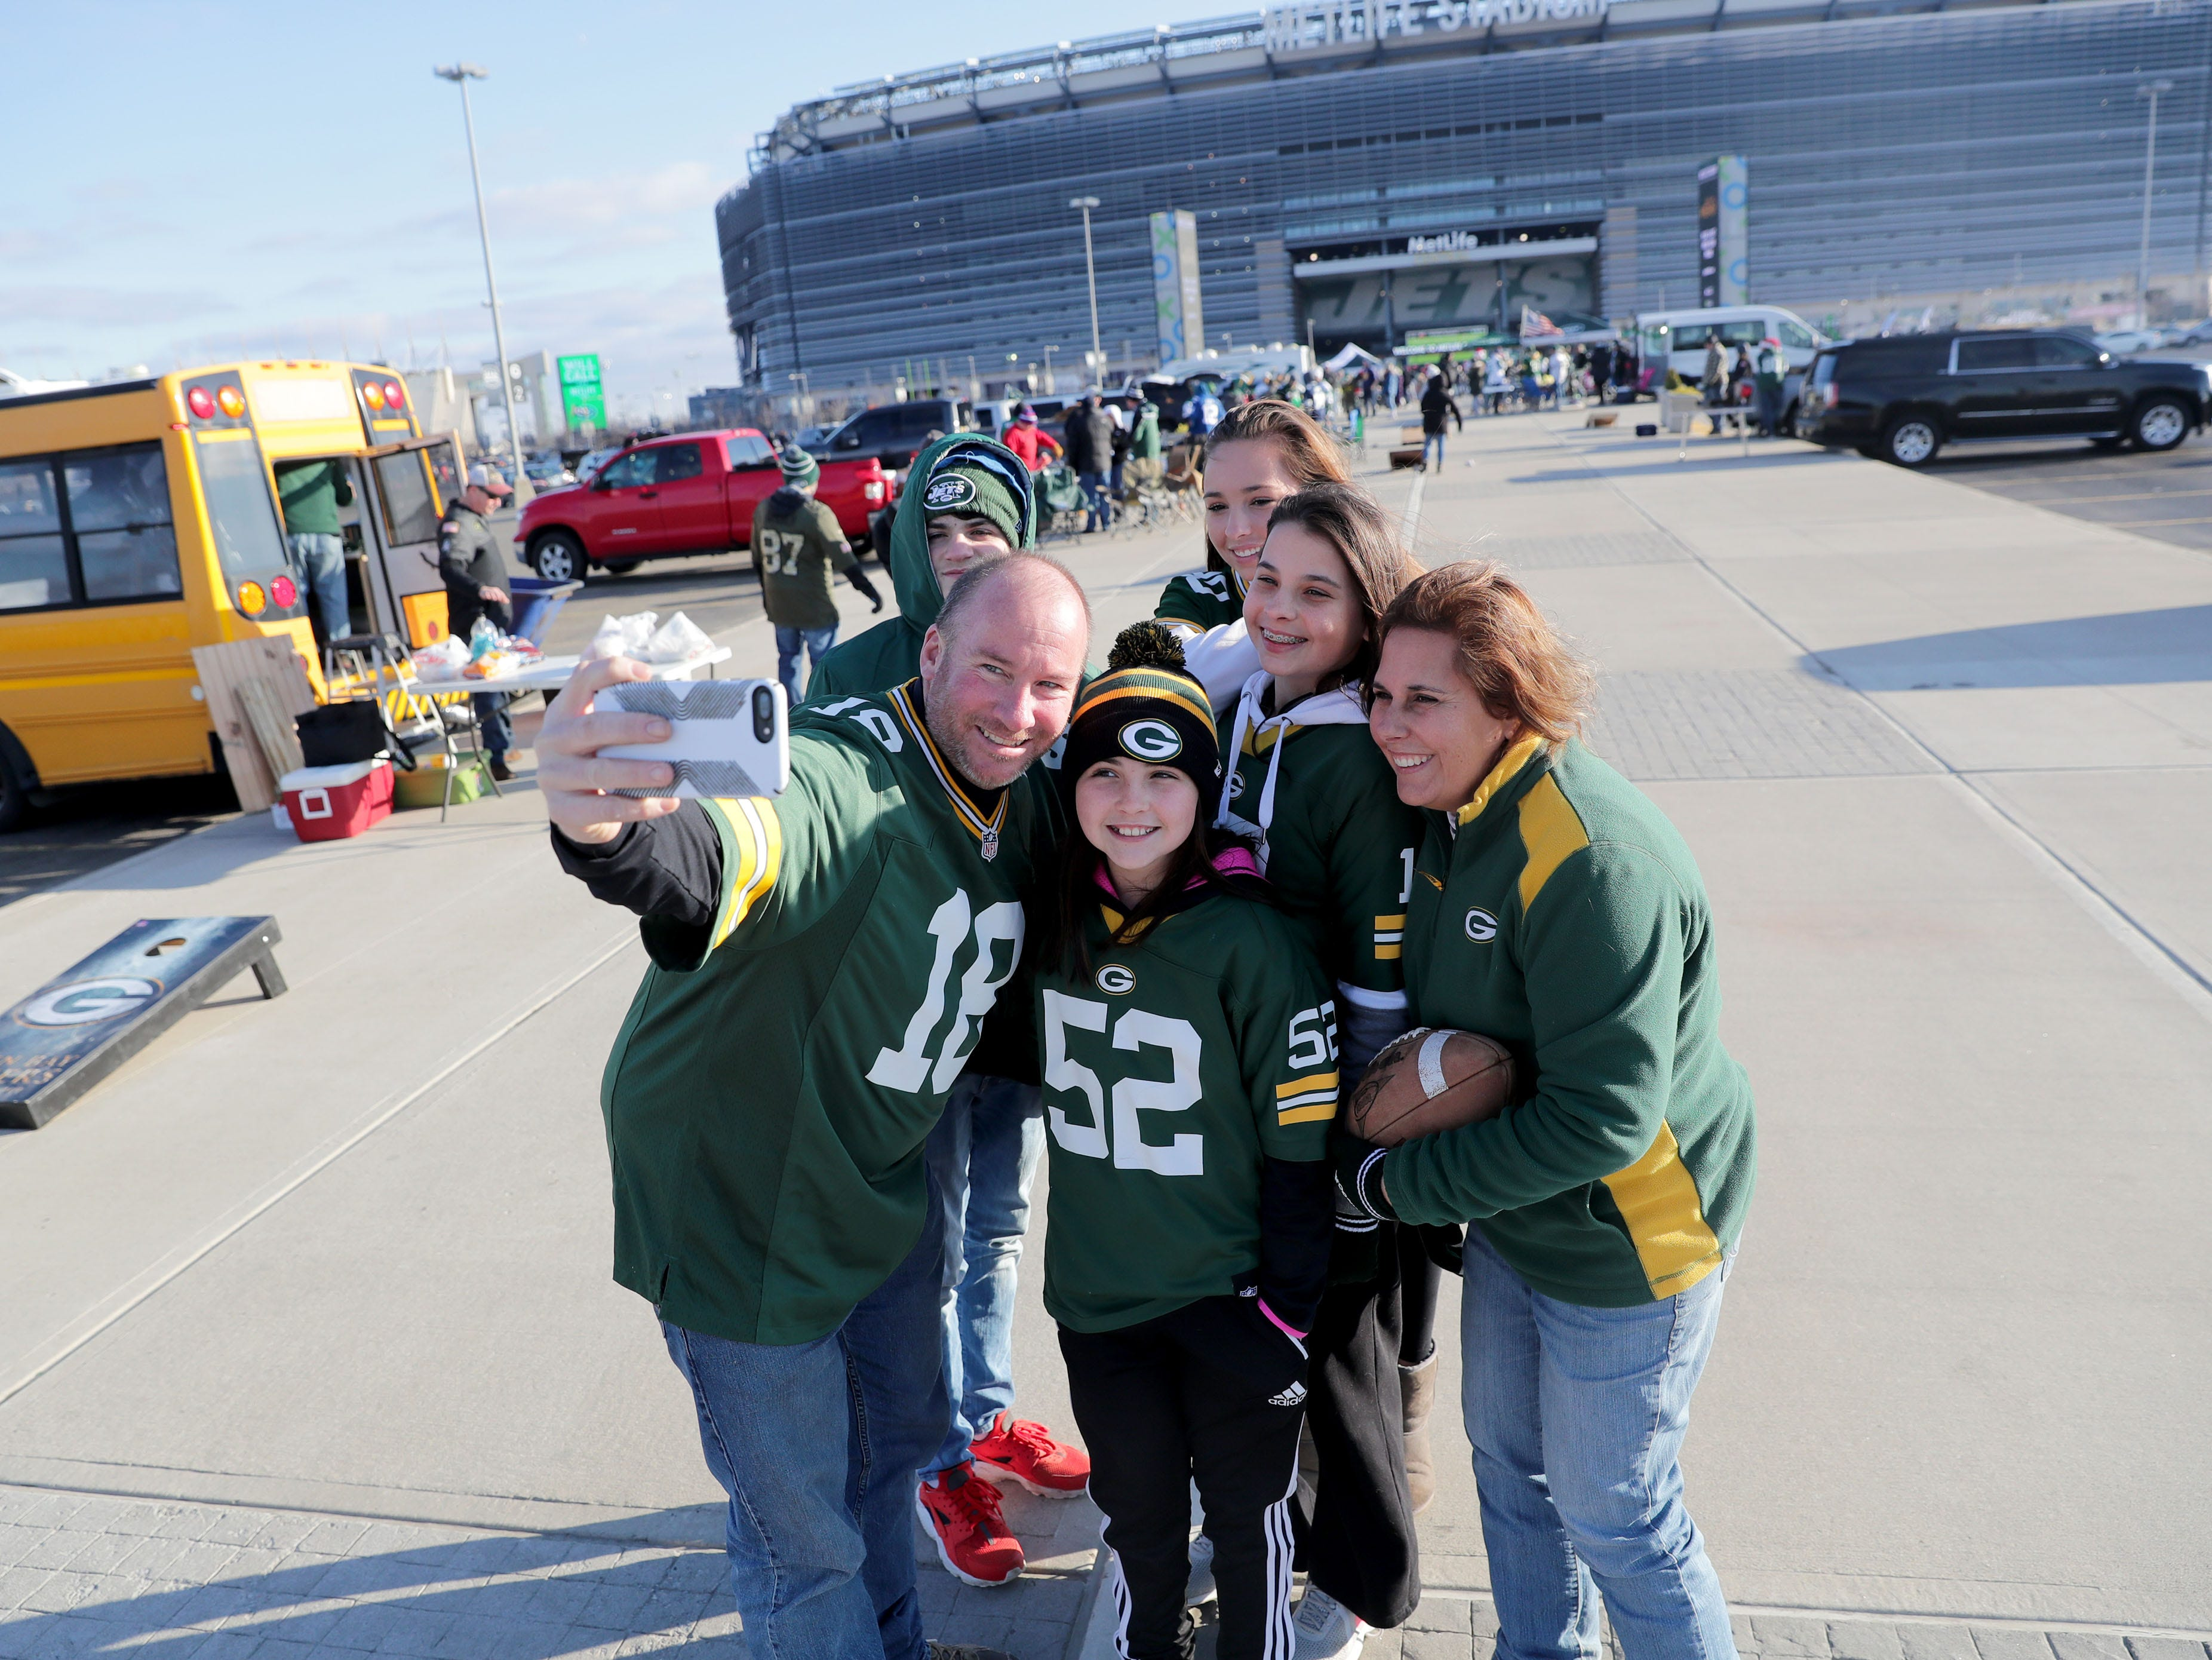 Green Bay Packers fan Joe Buckley, from Limerick, PA, takes a selfie with his family, including his wife, Jen (far right) , their daughters, 10-year-old Erin (52), 14-year-old Lauren (second right), 15-year-old Kelly, and KellyÕs boyfriend 15-year-old Evan Carvo, a New York Jets fan from Greenlane, PA before the Green Bay Packers game against the New York Jets at MetLife Stadium Sunday, Dec. 23, 2018, in East Rutherford.